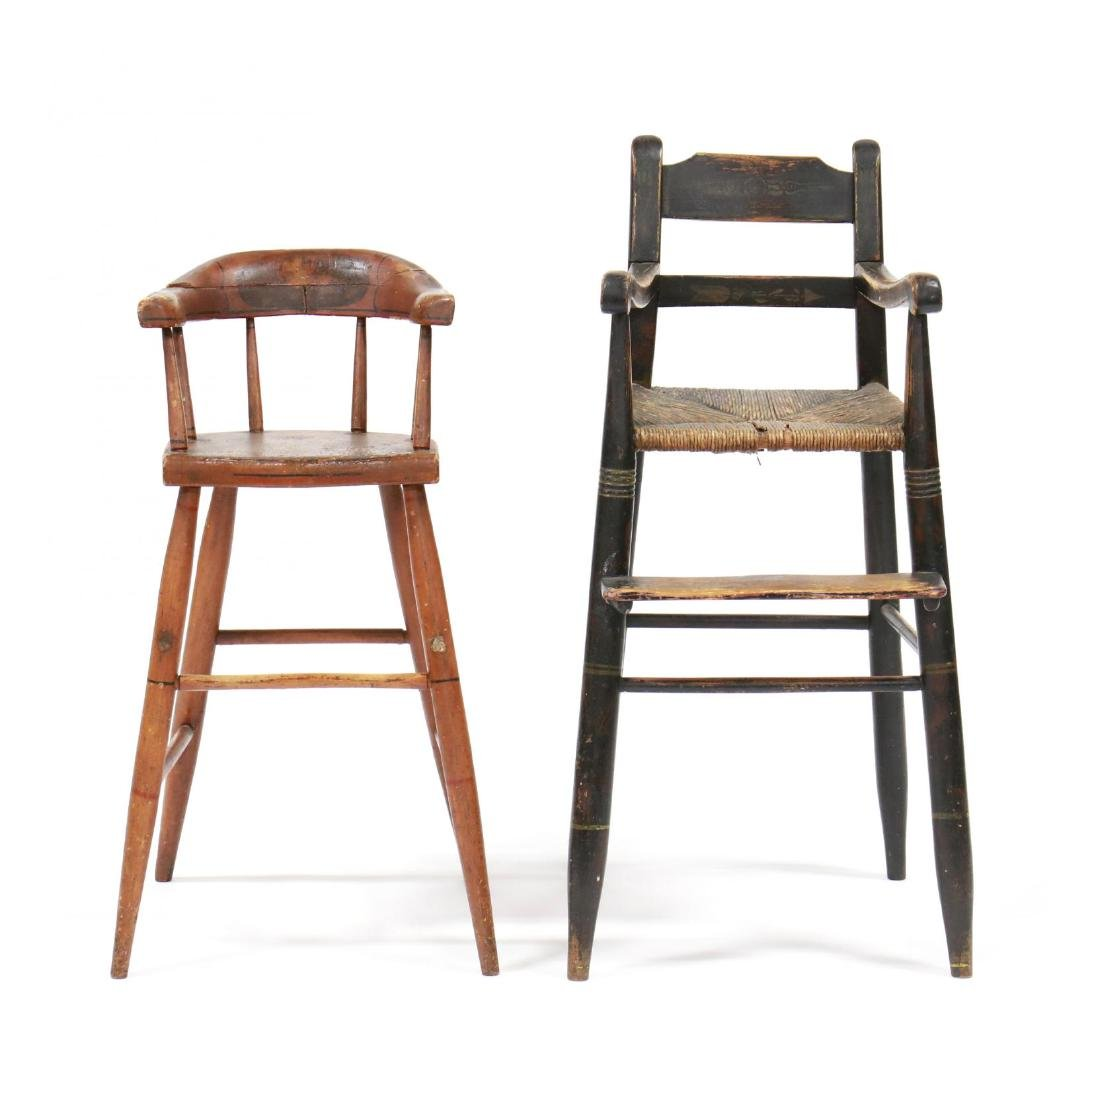 Two Antique American Child's High Chairs